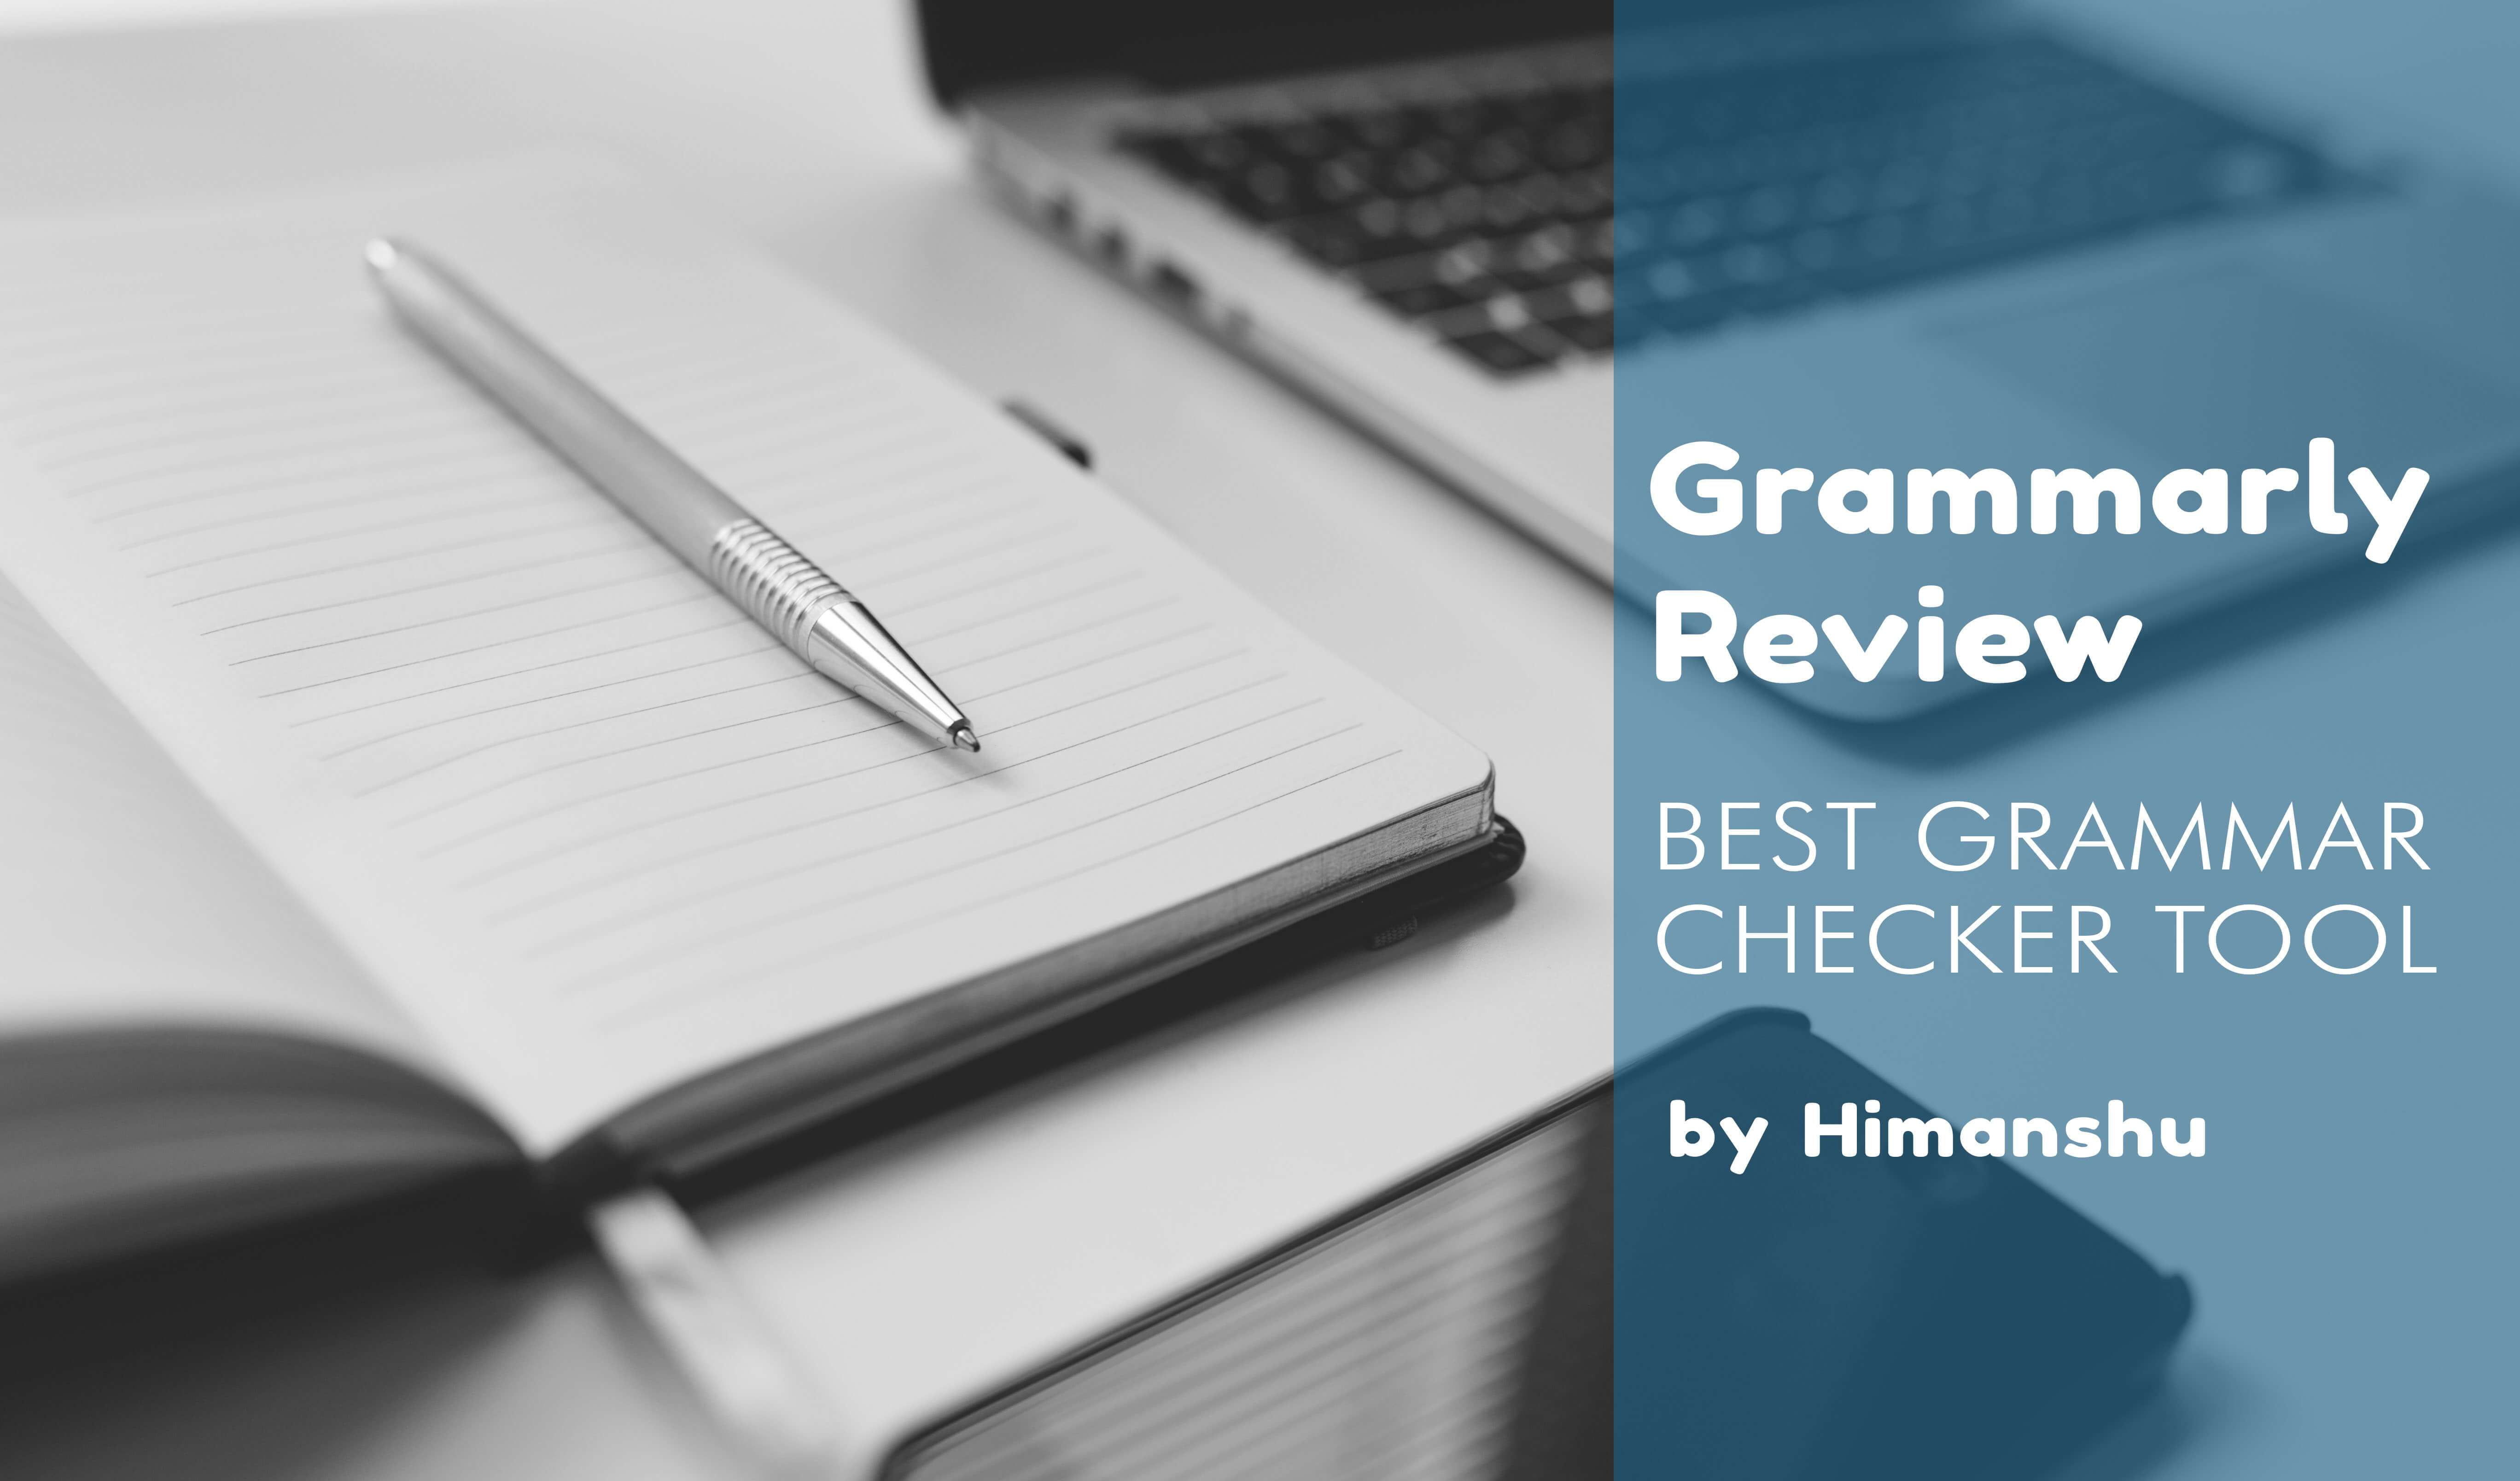 013 Essay Checker Grammar Grammarly Review Best My Write Online Re Reviews Example Fantastic Grab Full